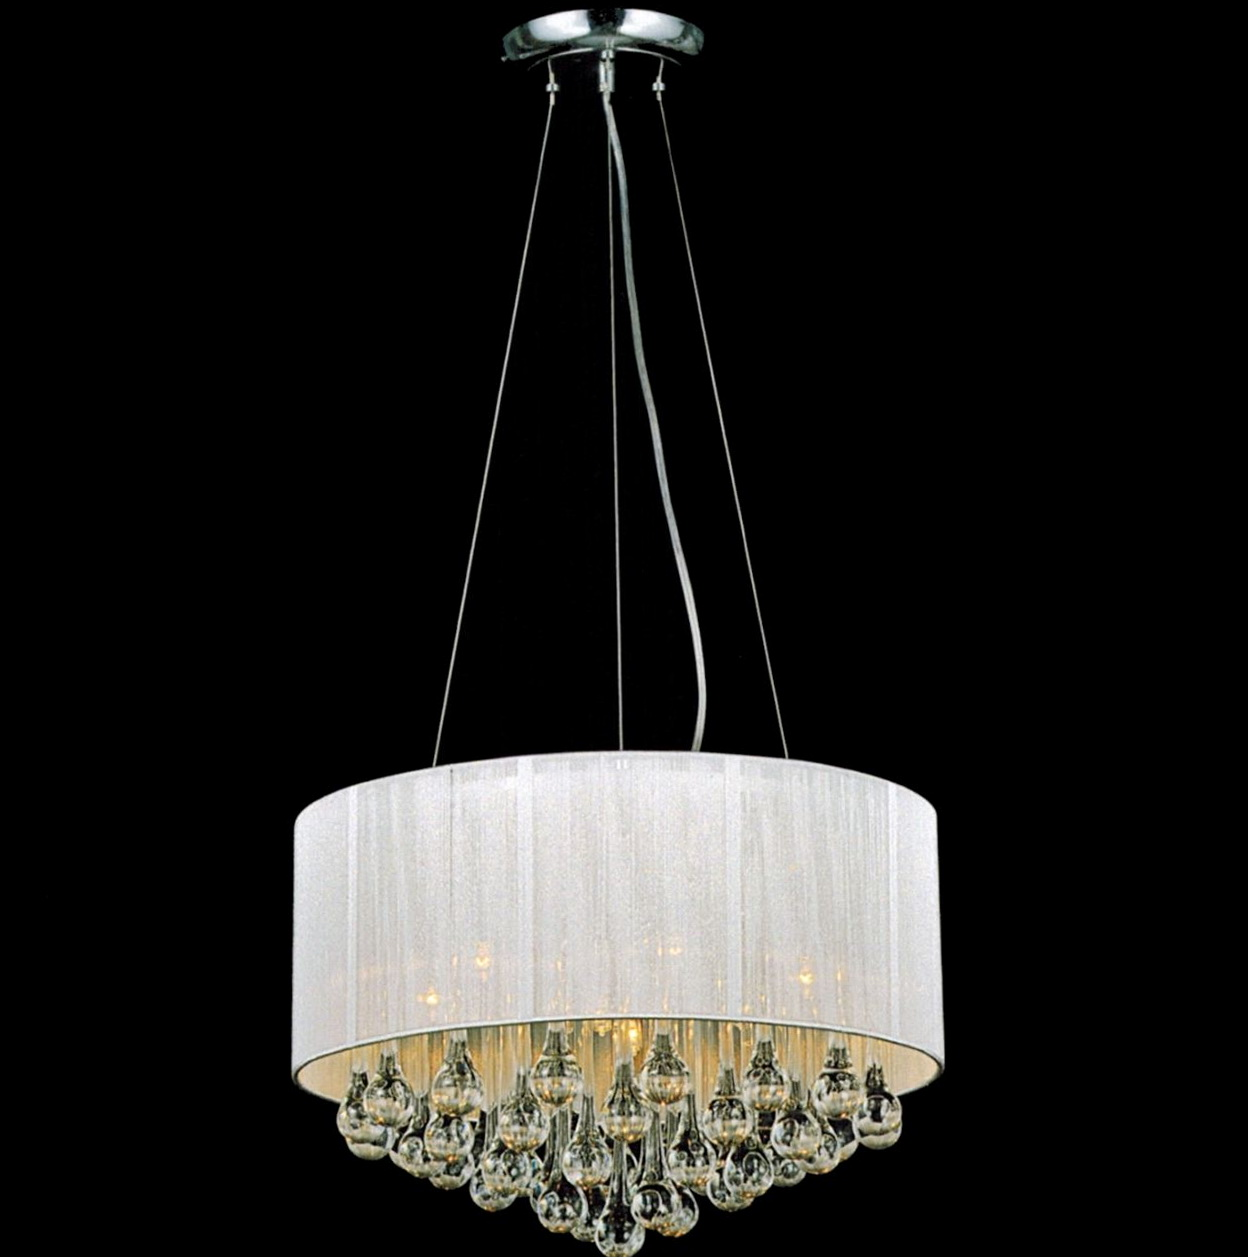 White Drum Shade Crystal Chandelier